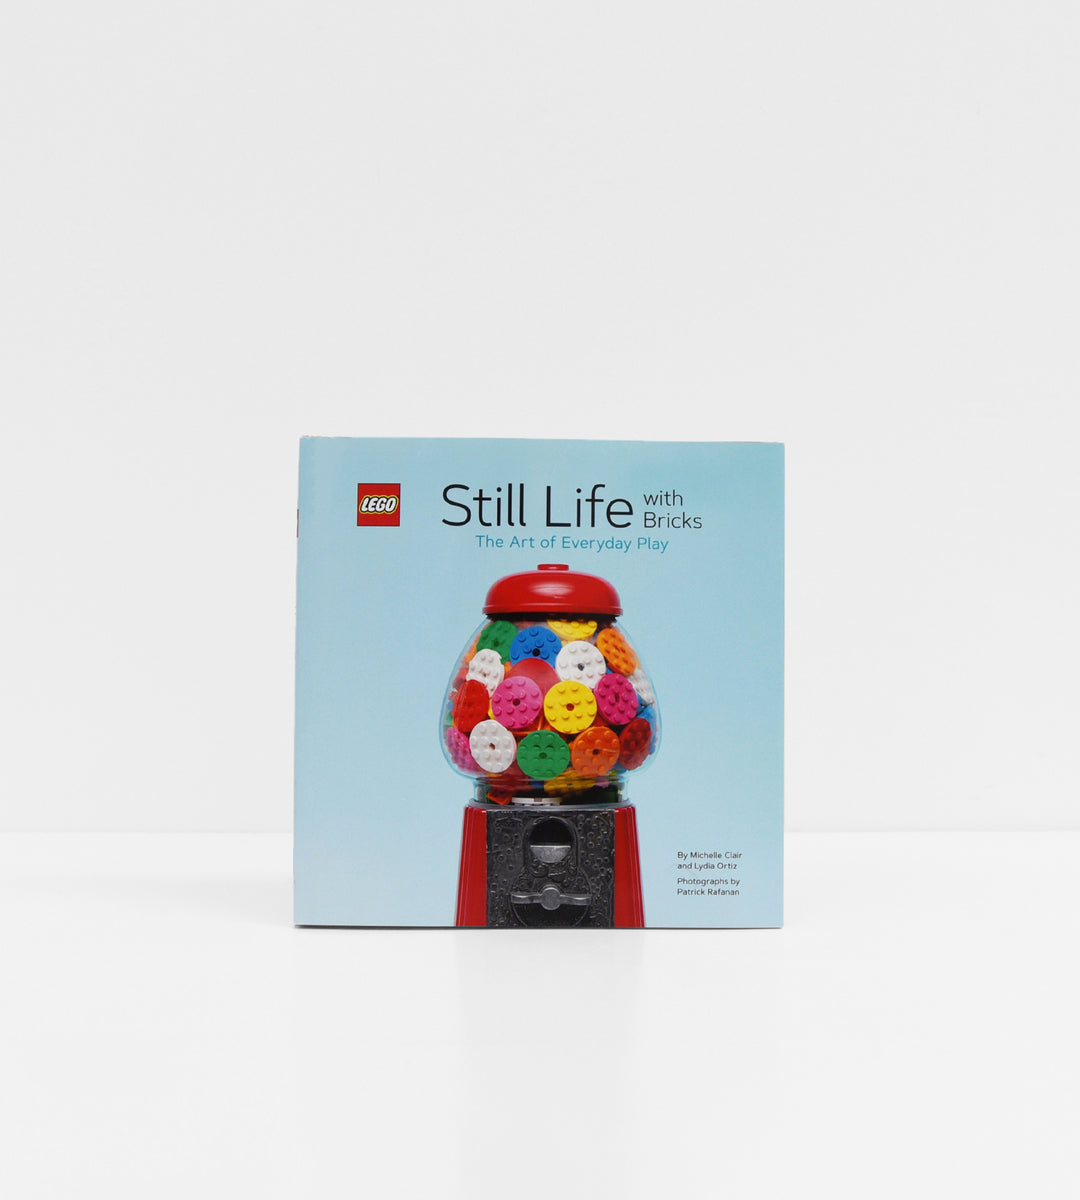 Lego | Still Life with Bricks | The Art of Everyday Play | by Lydia Ortiz and Michelle Clair